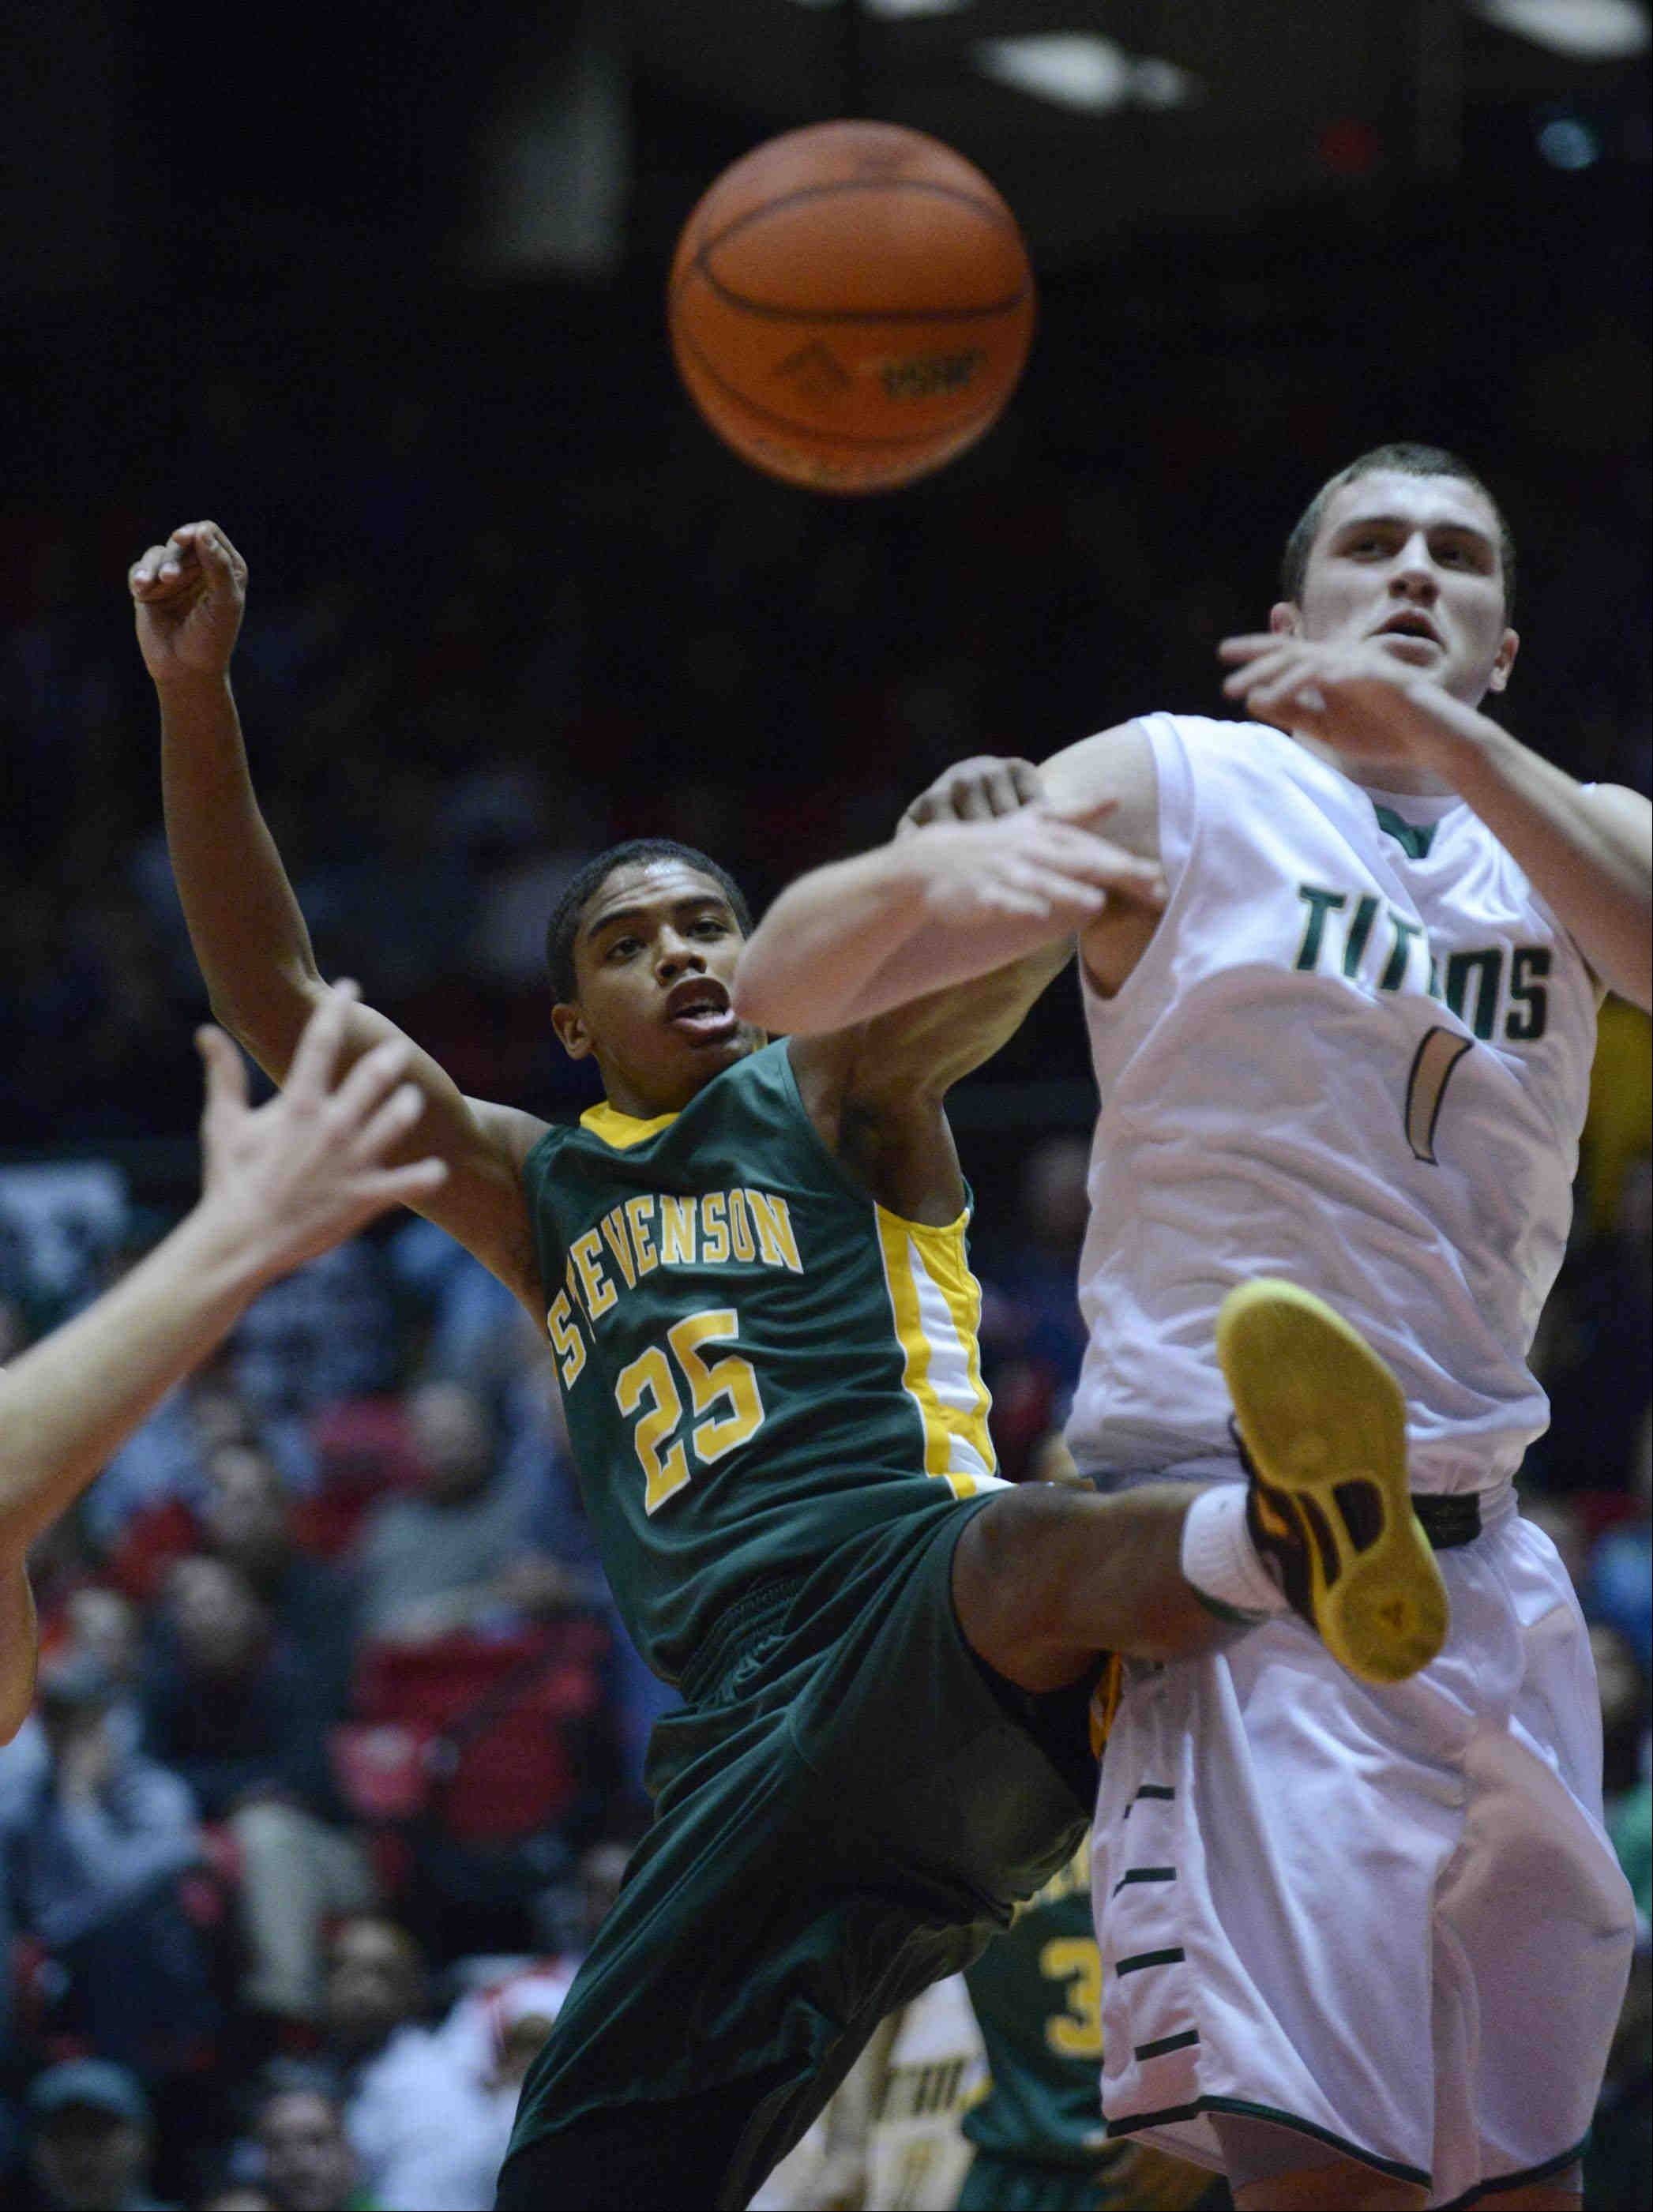 Stevenson's Cameron Green and Rockford Boylan's Jim Bridges battle under the basket.